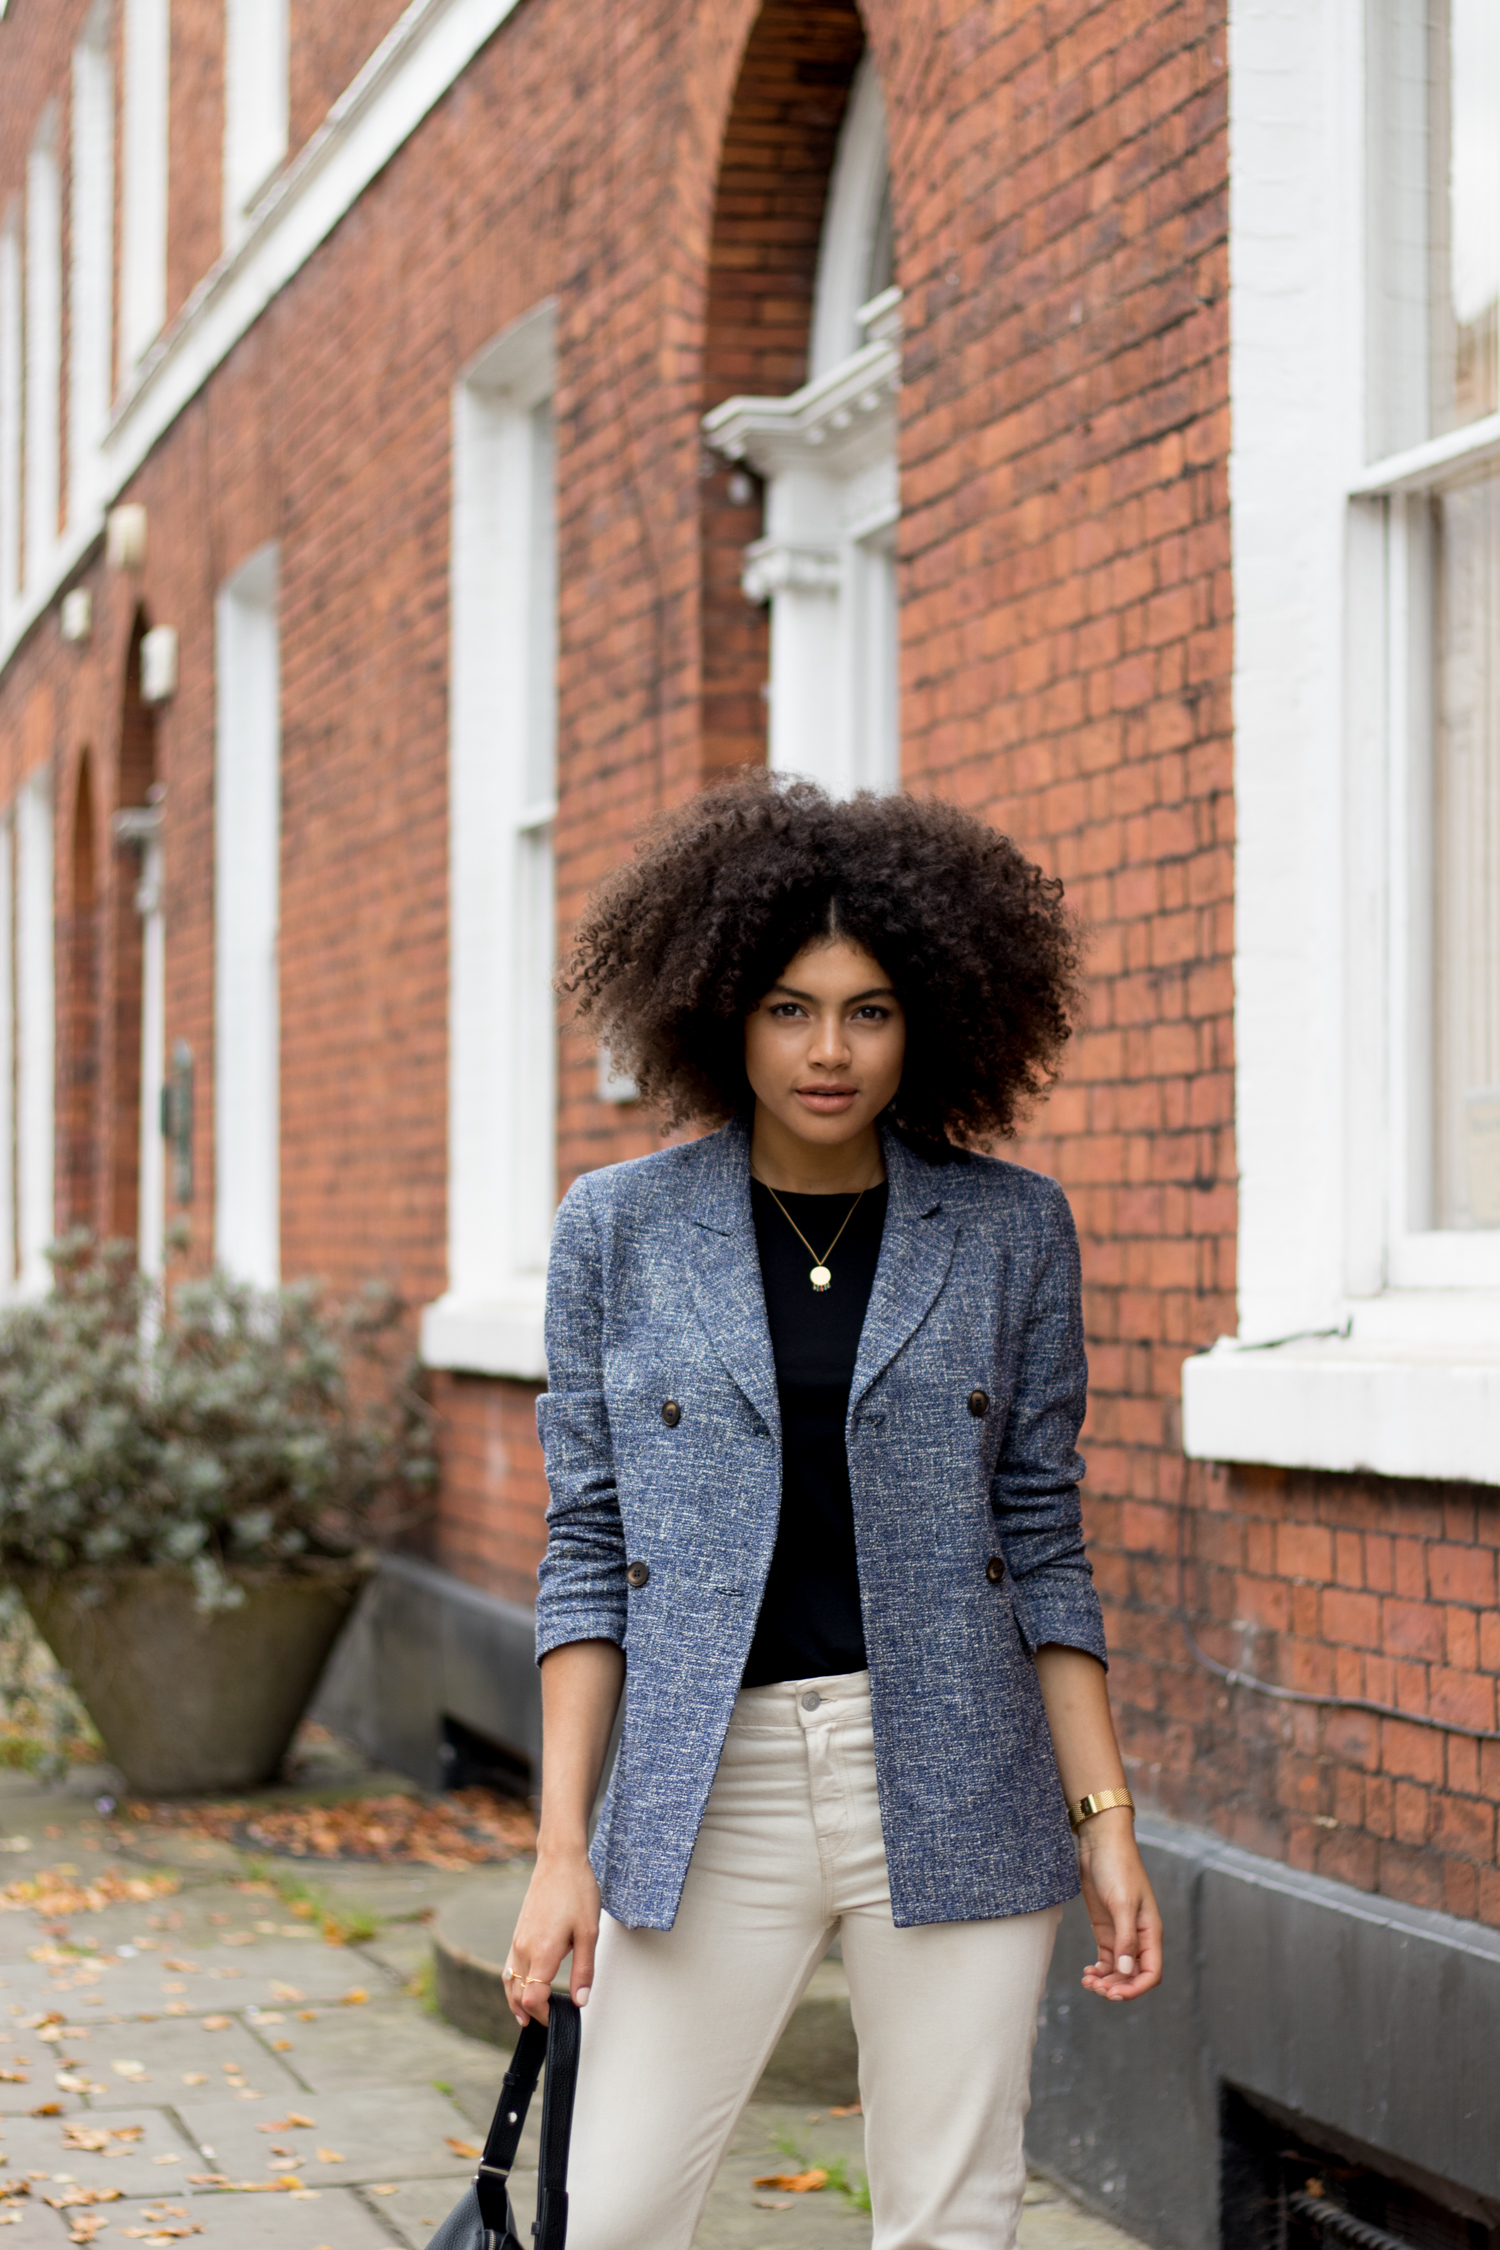 Blue Topshop Blazer Everyday Smart Casual Outfit Styling